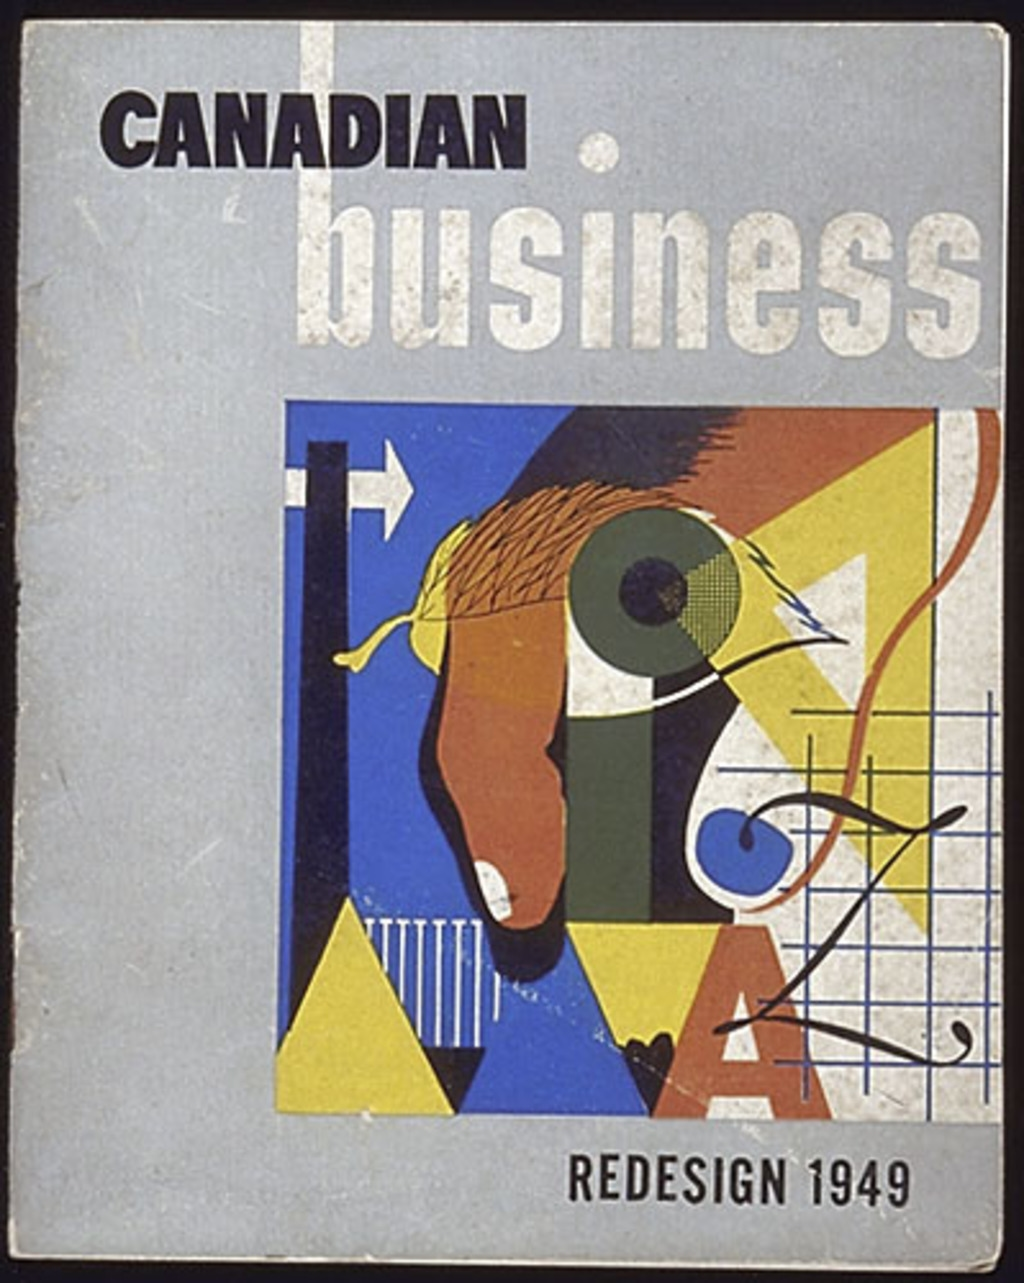 Brochure « Canadian Business Redesign »